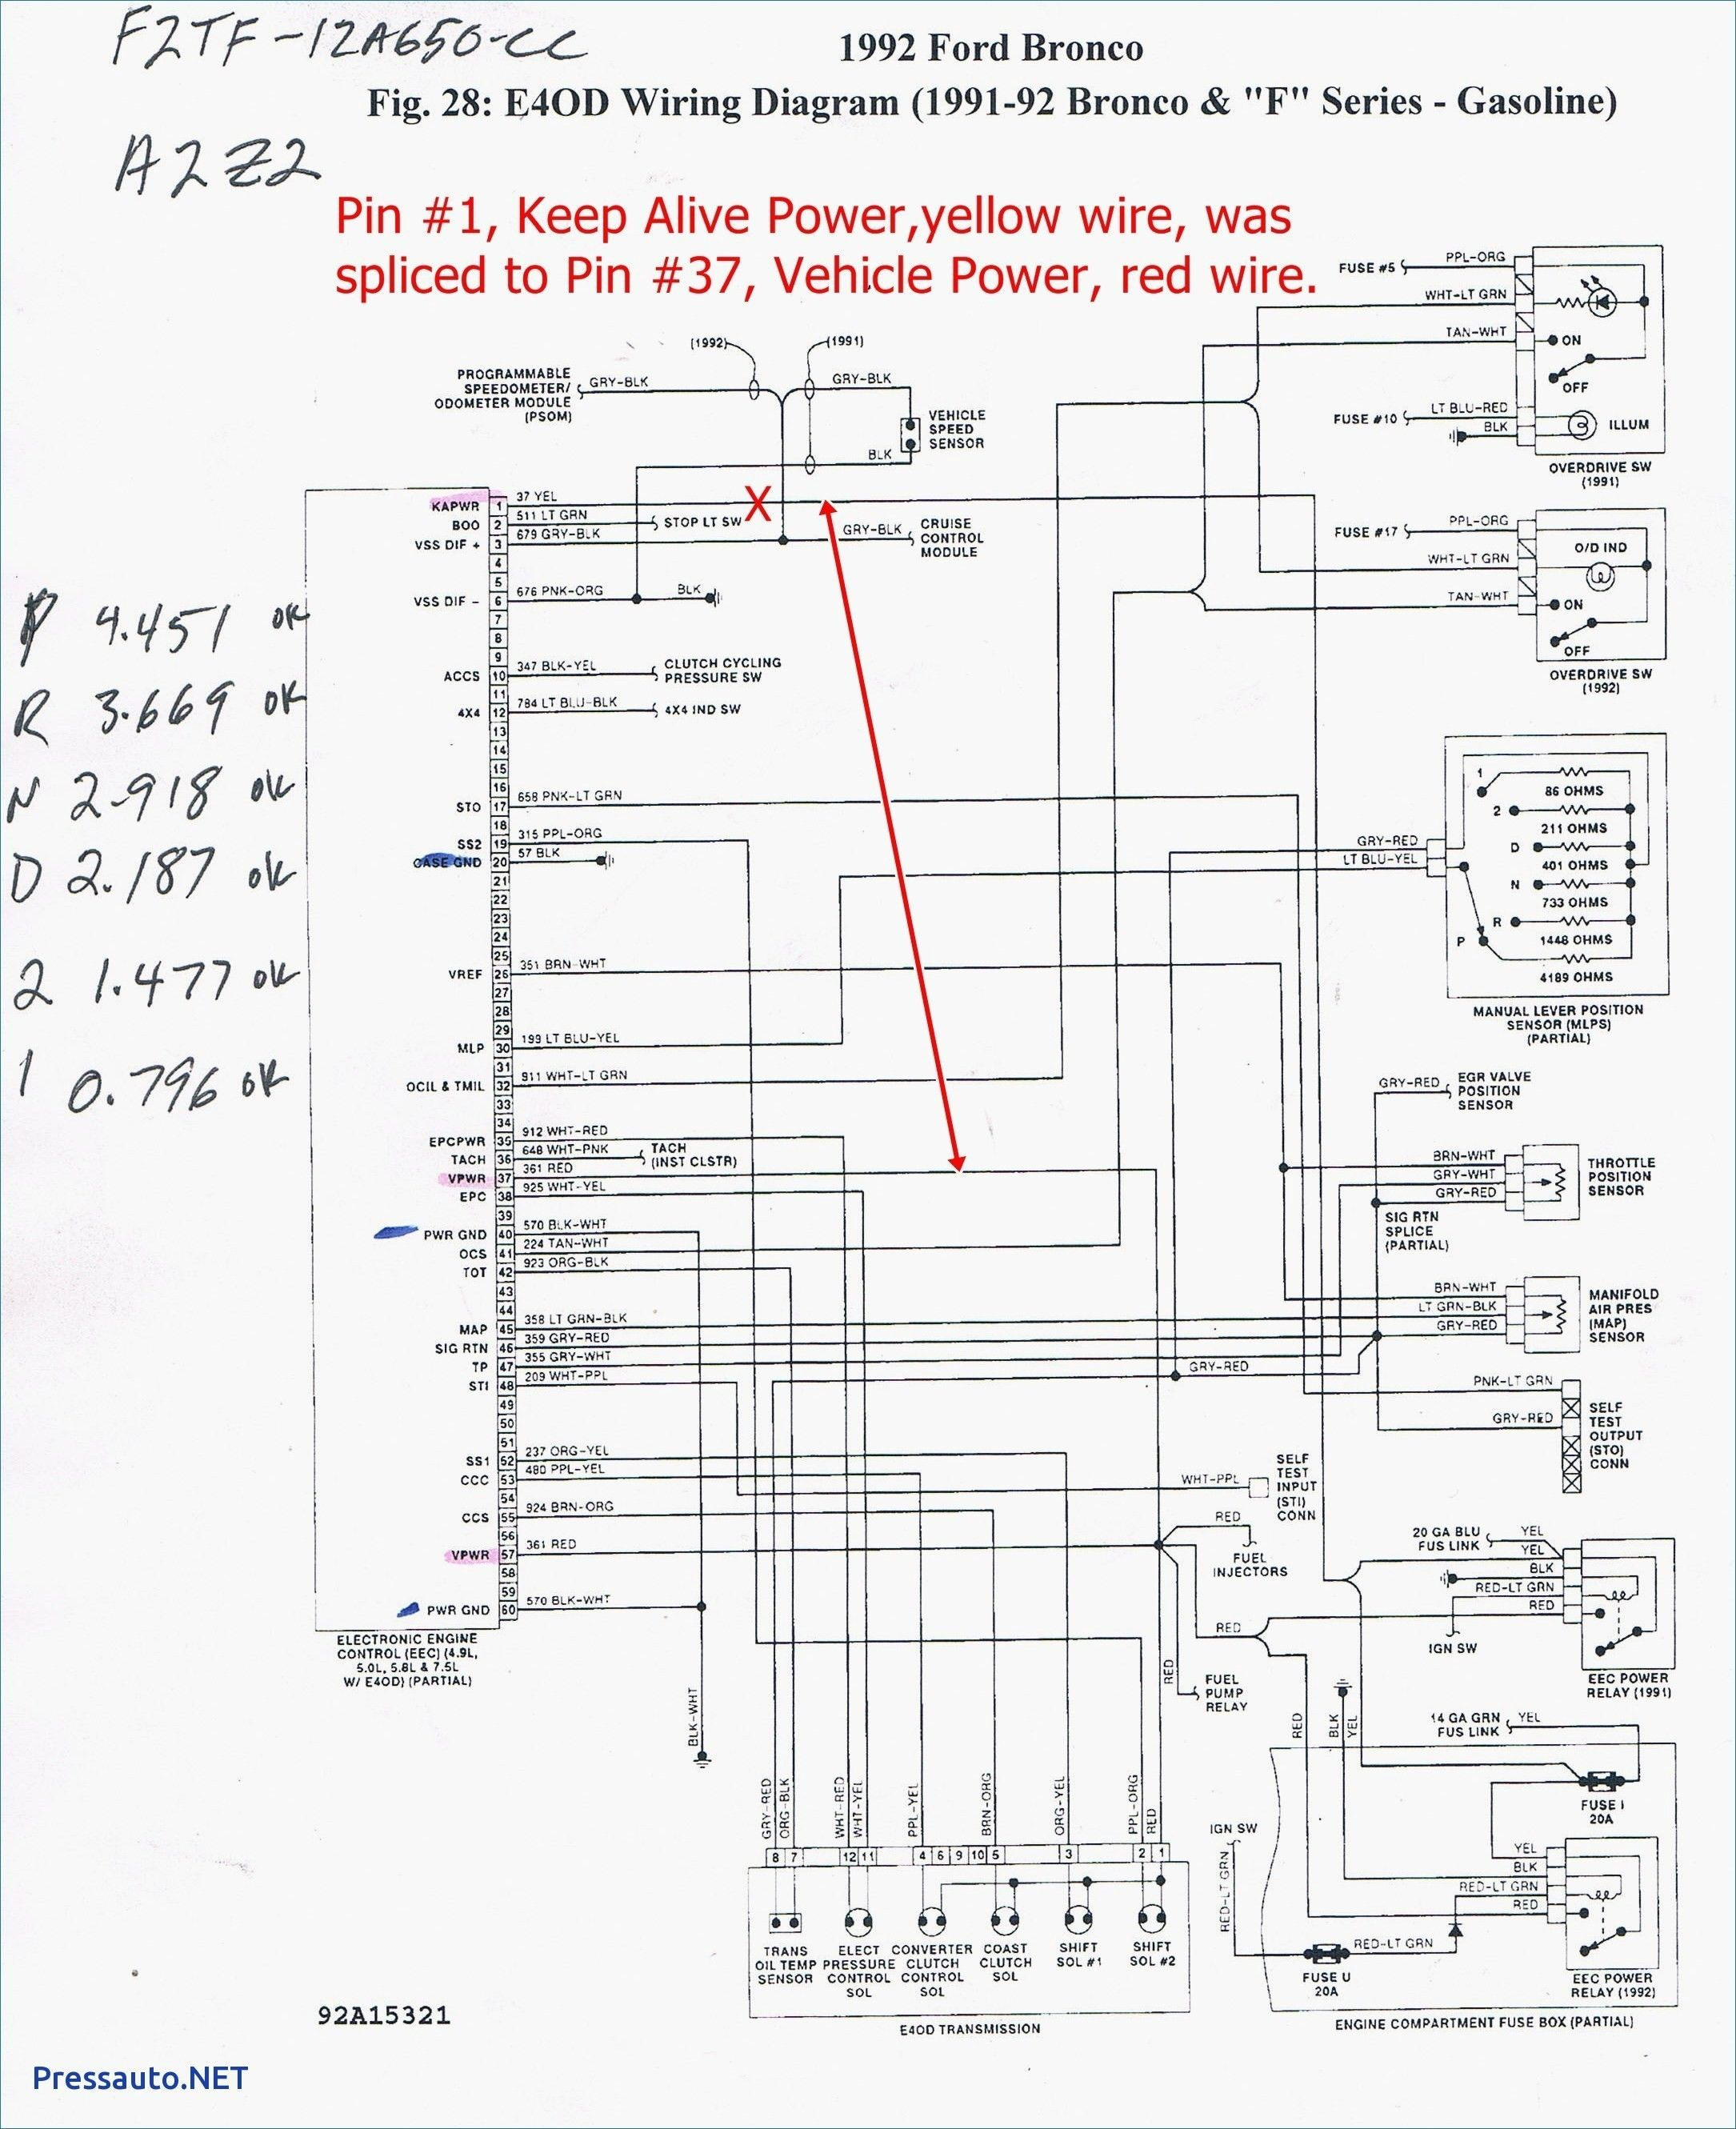 Inspirational 2001 Dodge Ram 1500 Stereo Wiring Diagram In 2020 Dodge Ram Dodge Ram 1500 2004 Dodge Ram 1500